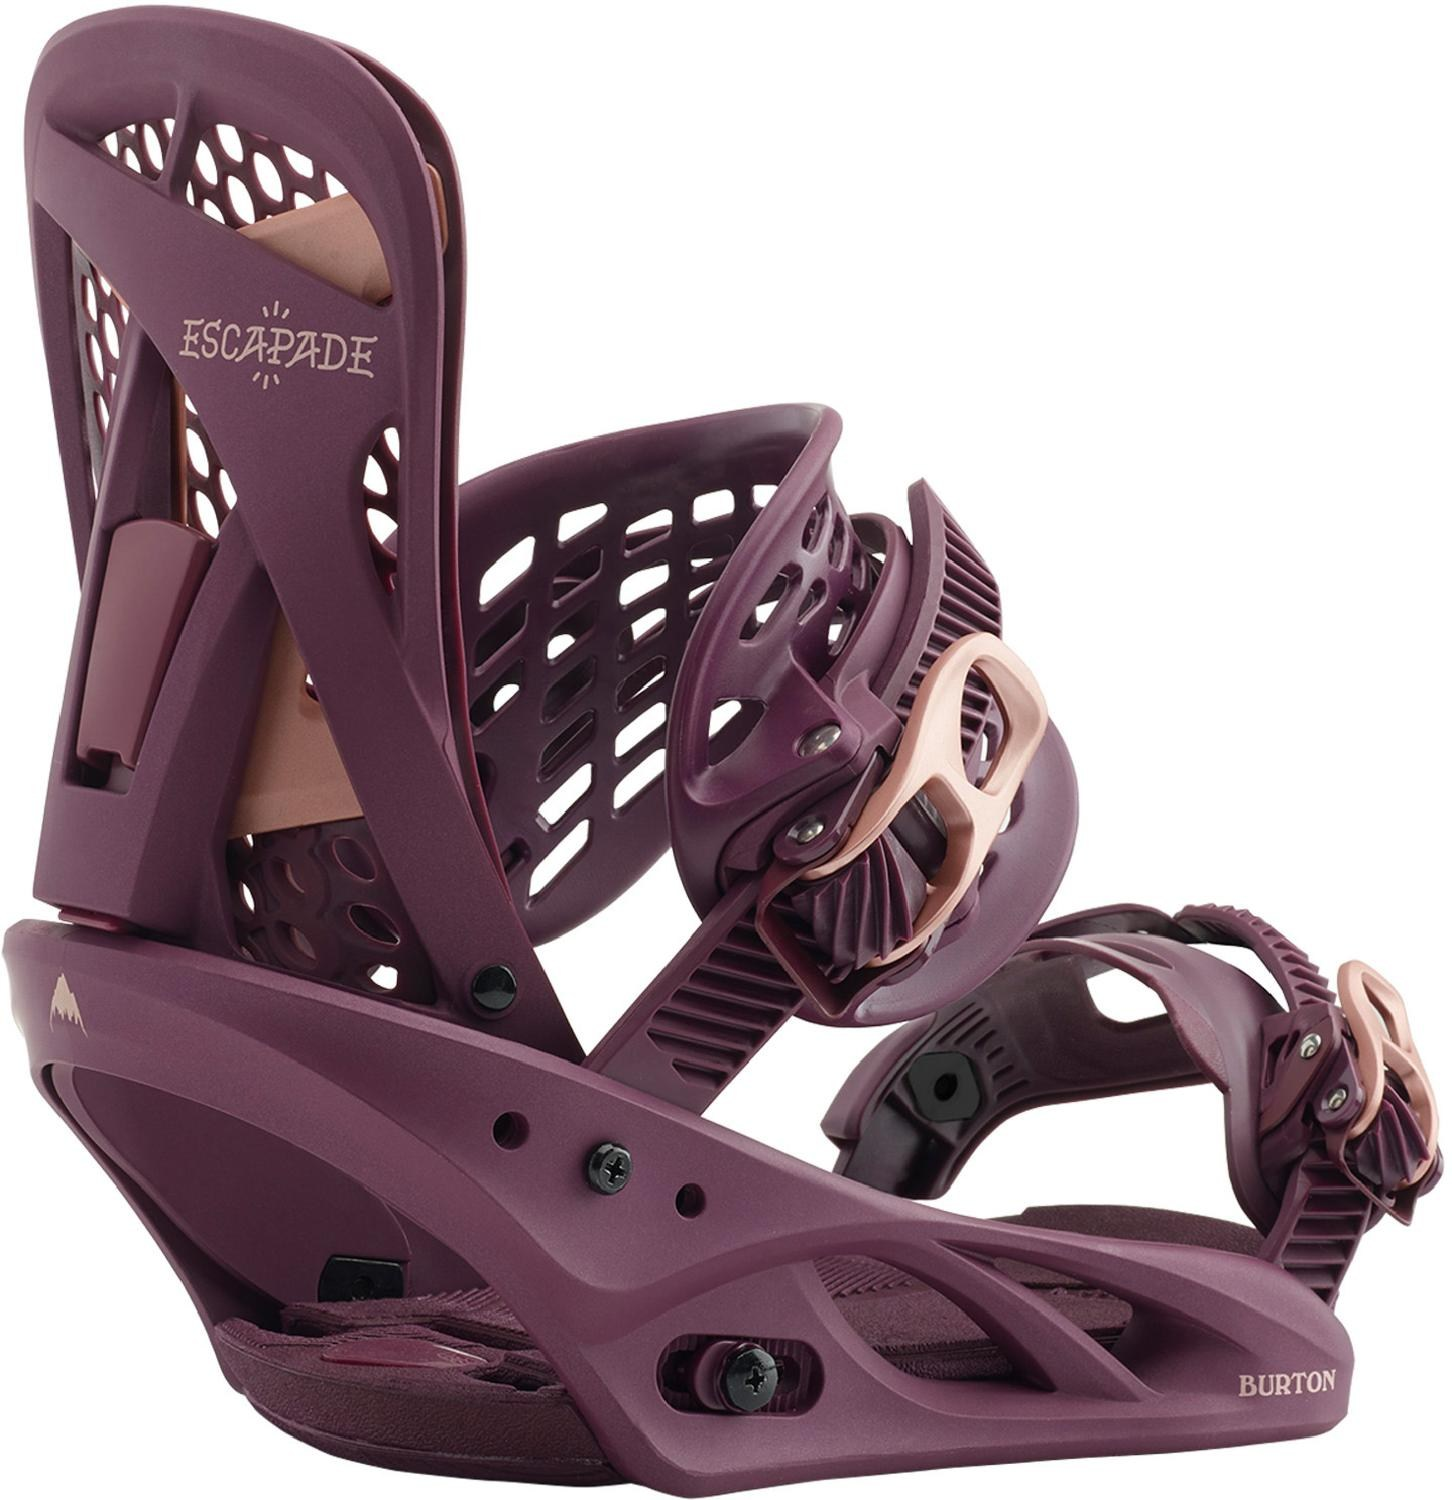 Burton Escapade Snowboard Bindings - Women's - 2018/2019